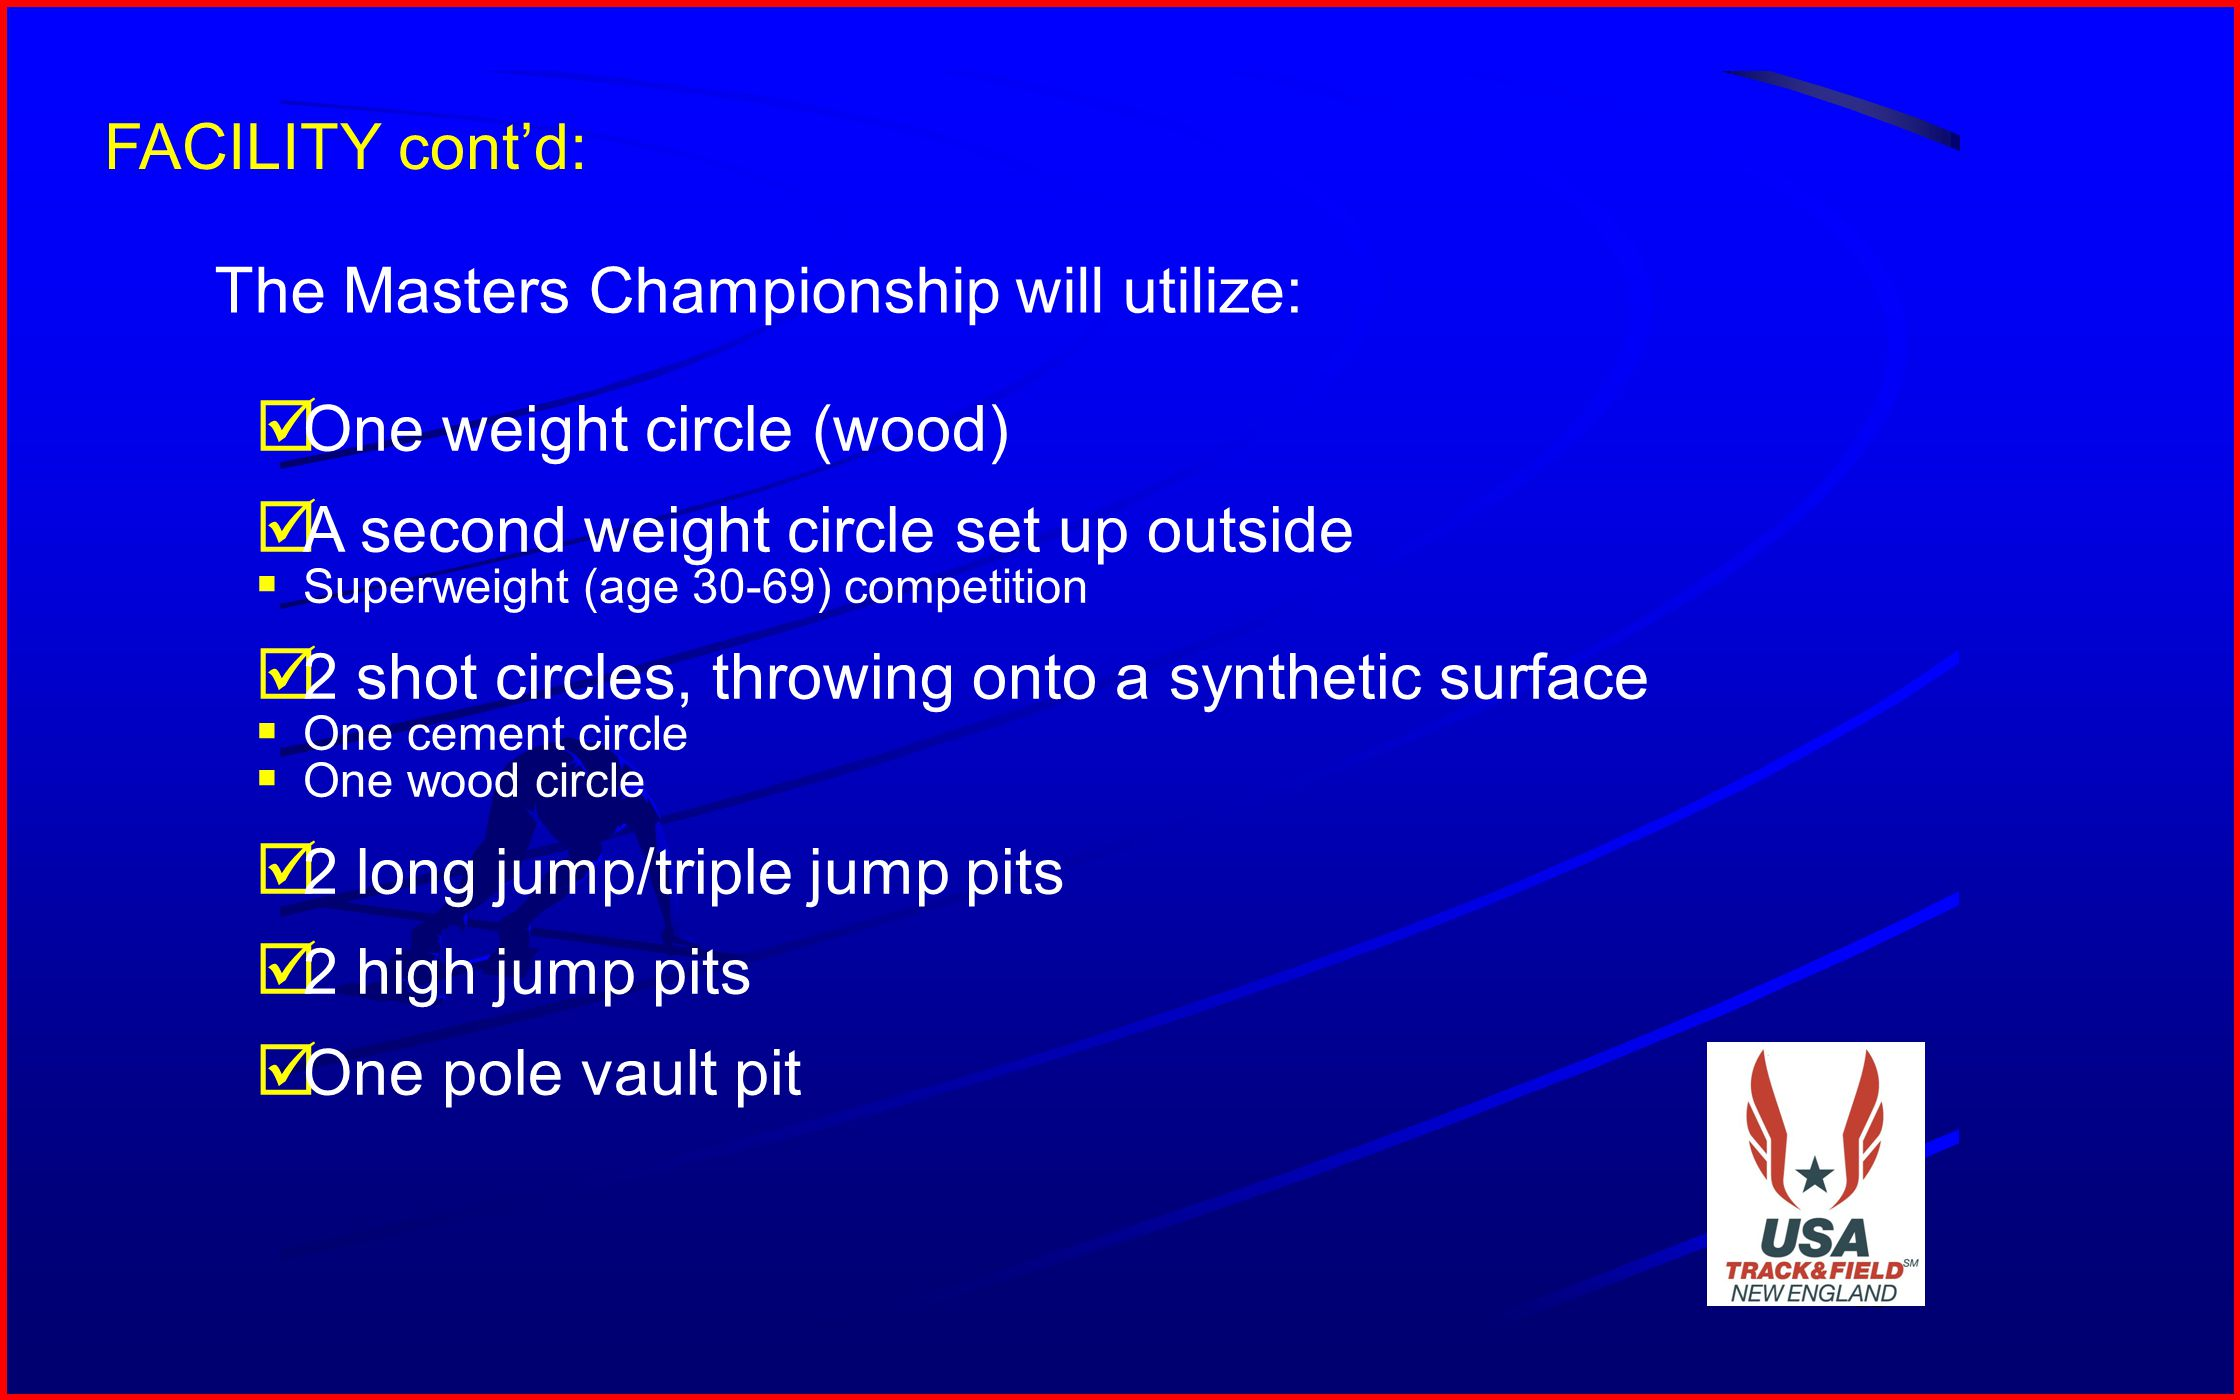 11 FACILITY contd: The Masters Championship will utilize: One weight circle (wood) A second weight circle set up outside Superweight (age 30-69) compe